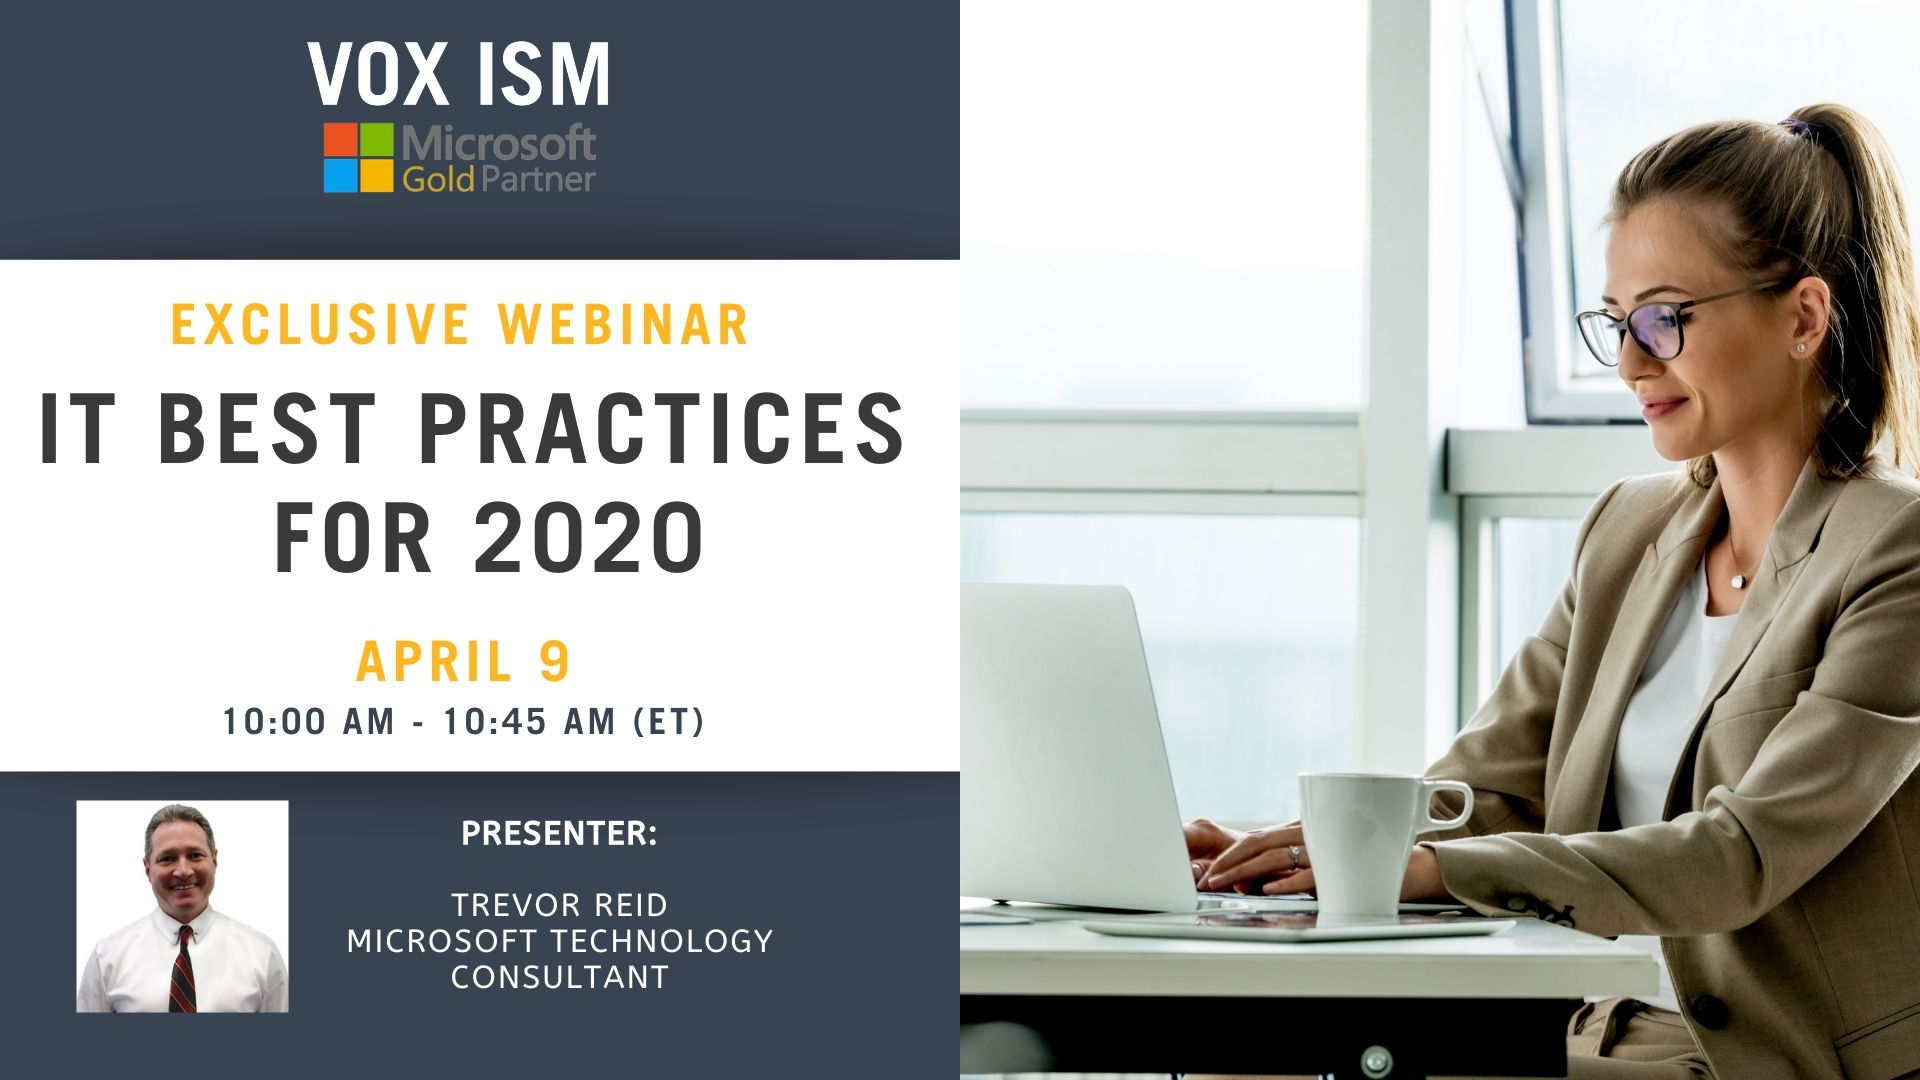 IT Best Practices for 2020 - April 9 - Webinar_VOX ISM